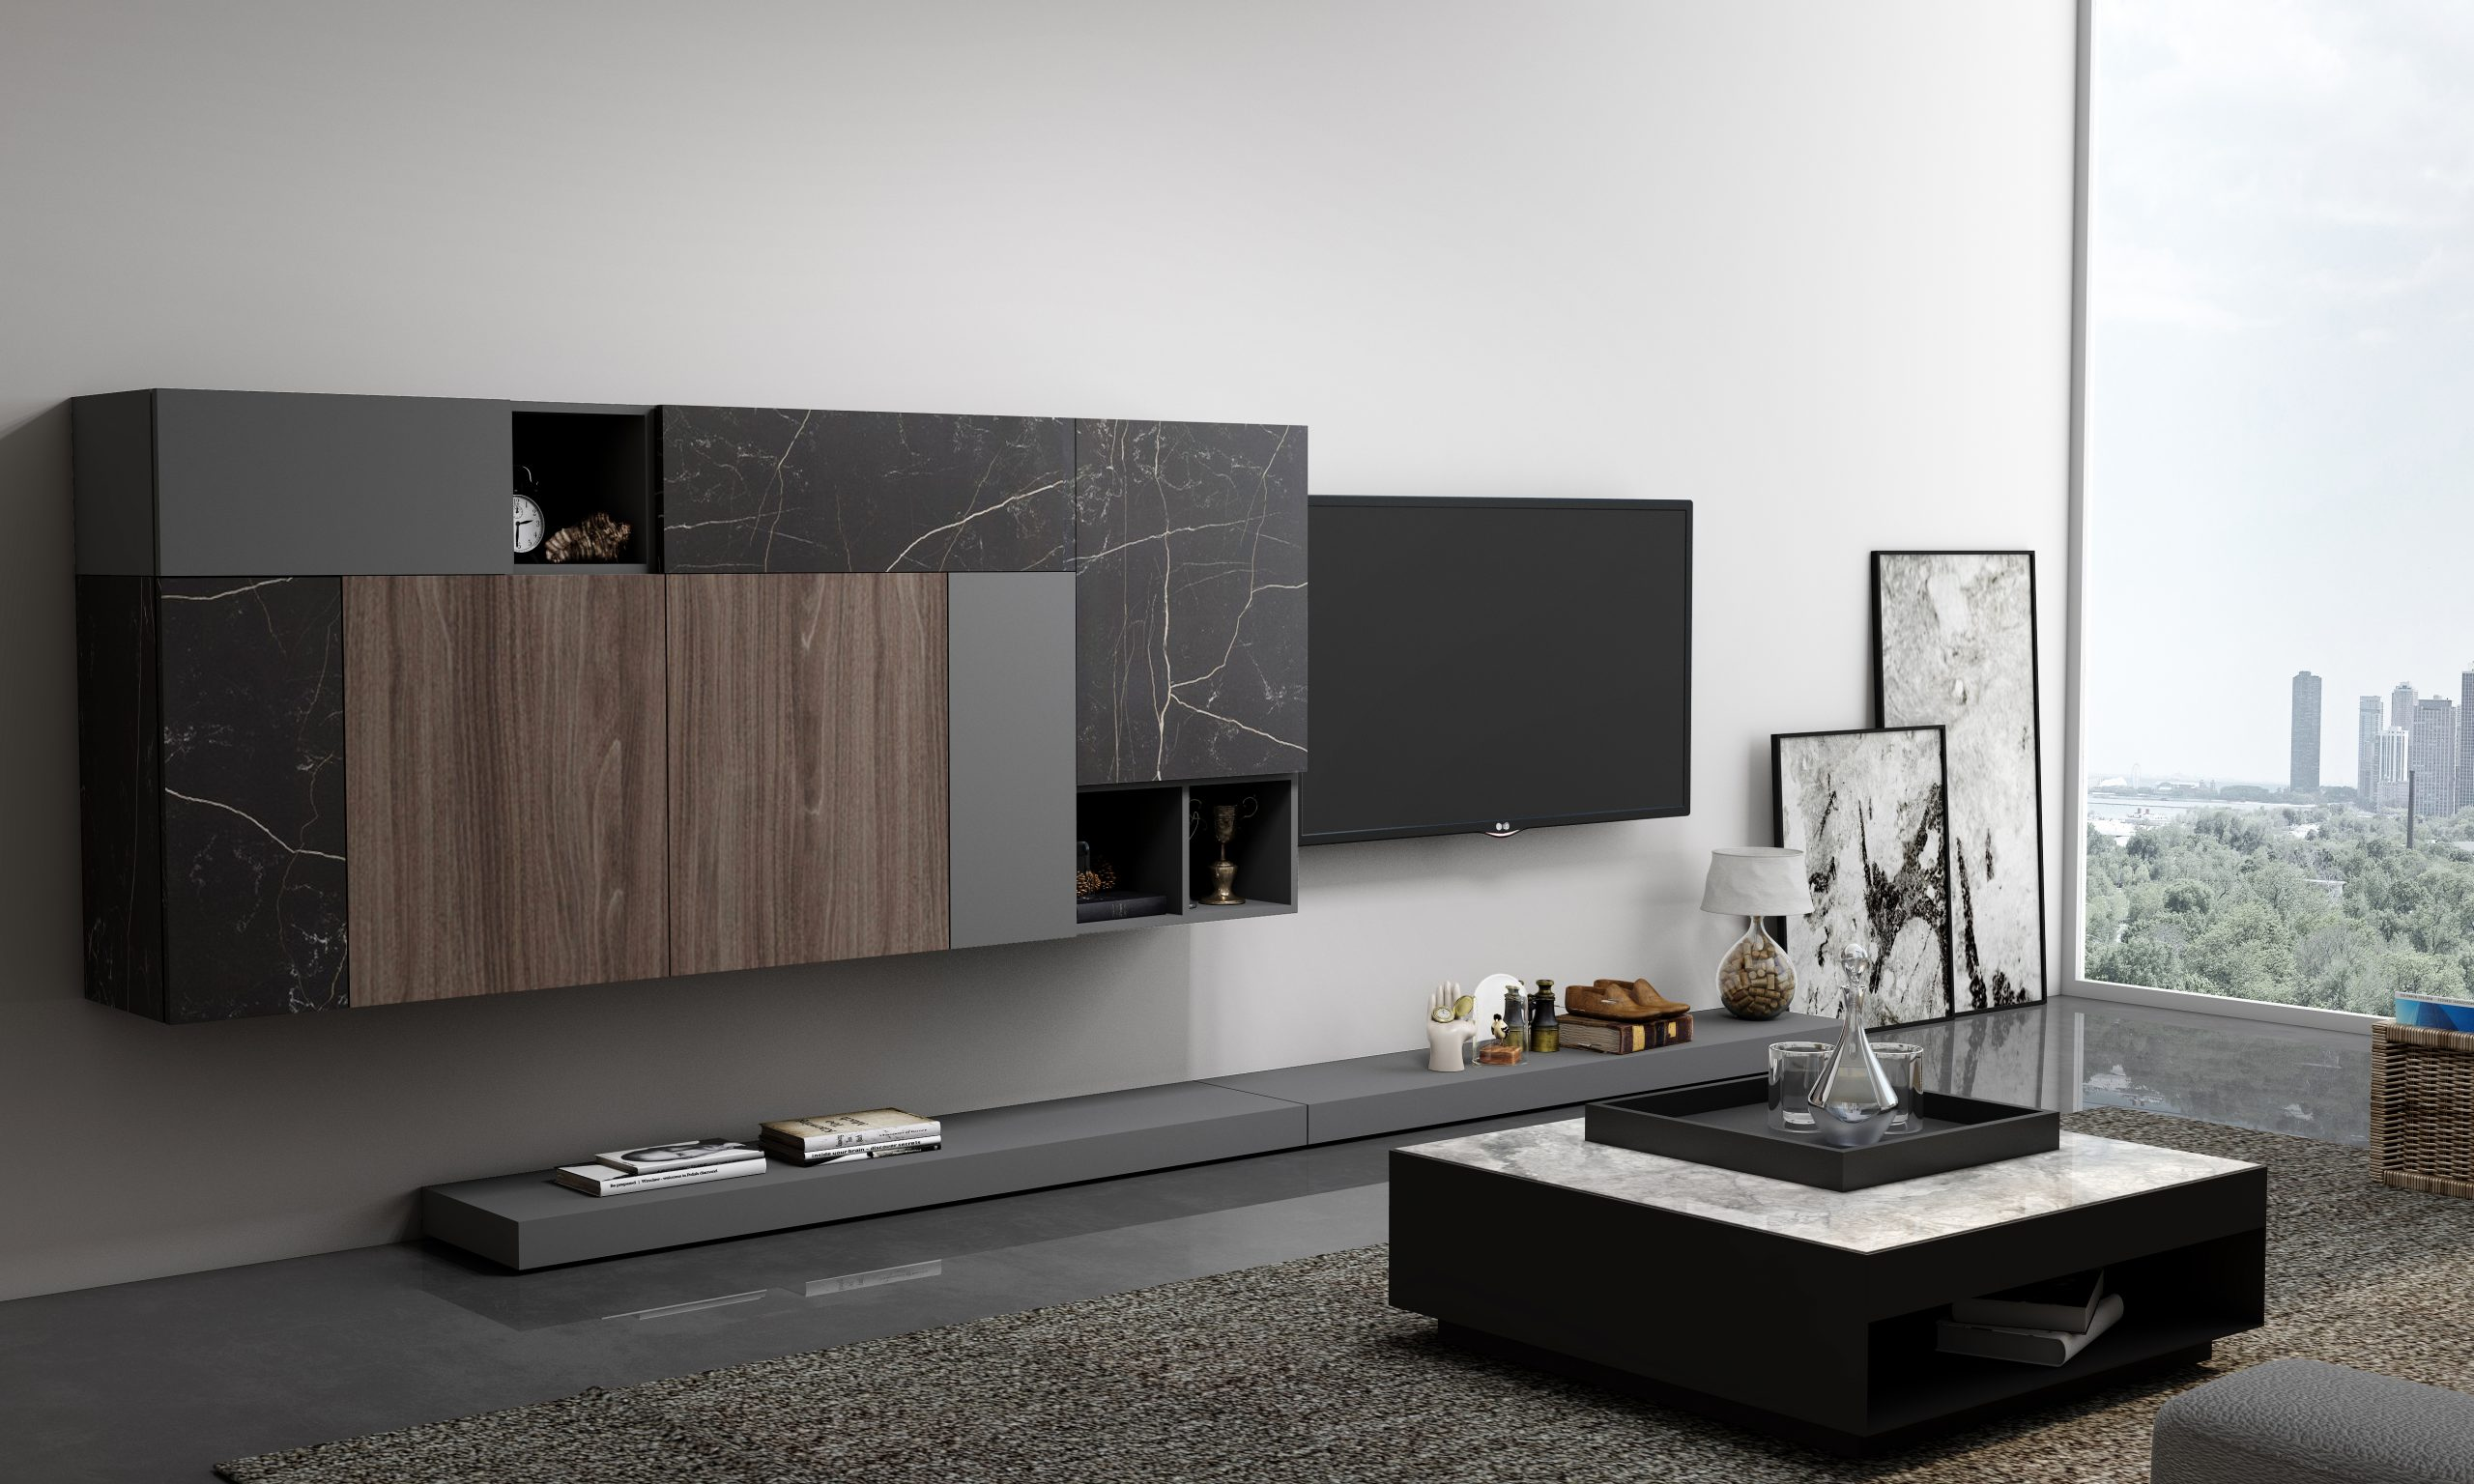 Wooden TV unit with Storage in Flap ups,Wall Units and Open shelf units in Combination of Dark Grey, Dark Select Walnut and Black Marble finish